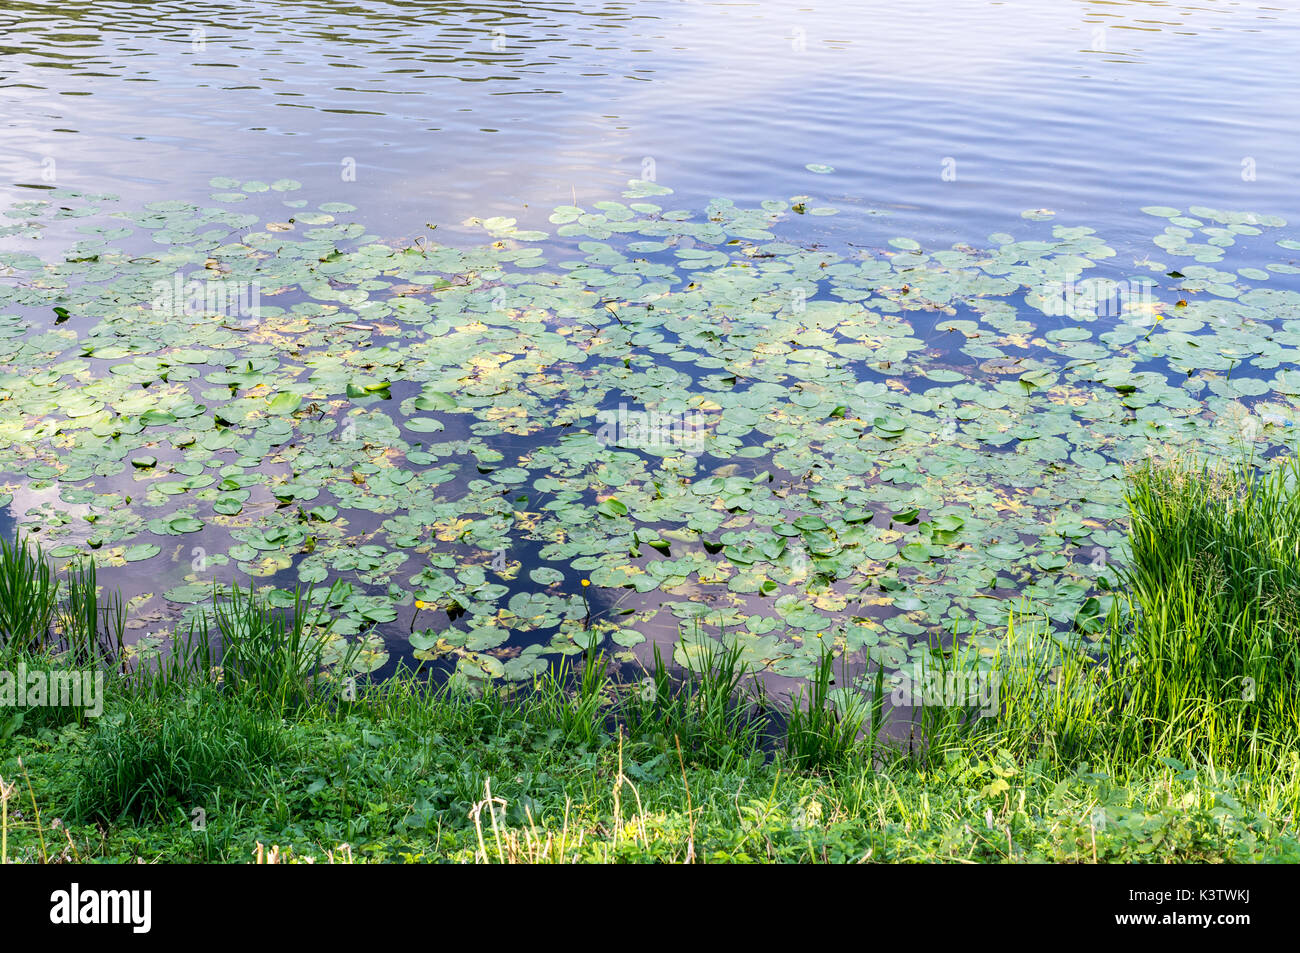 Brushwood garden stock photos brushwood garden stock for Green water in pond